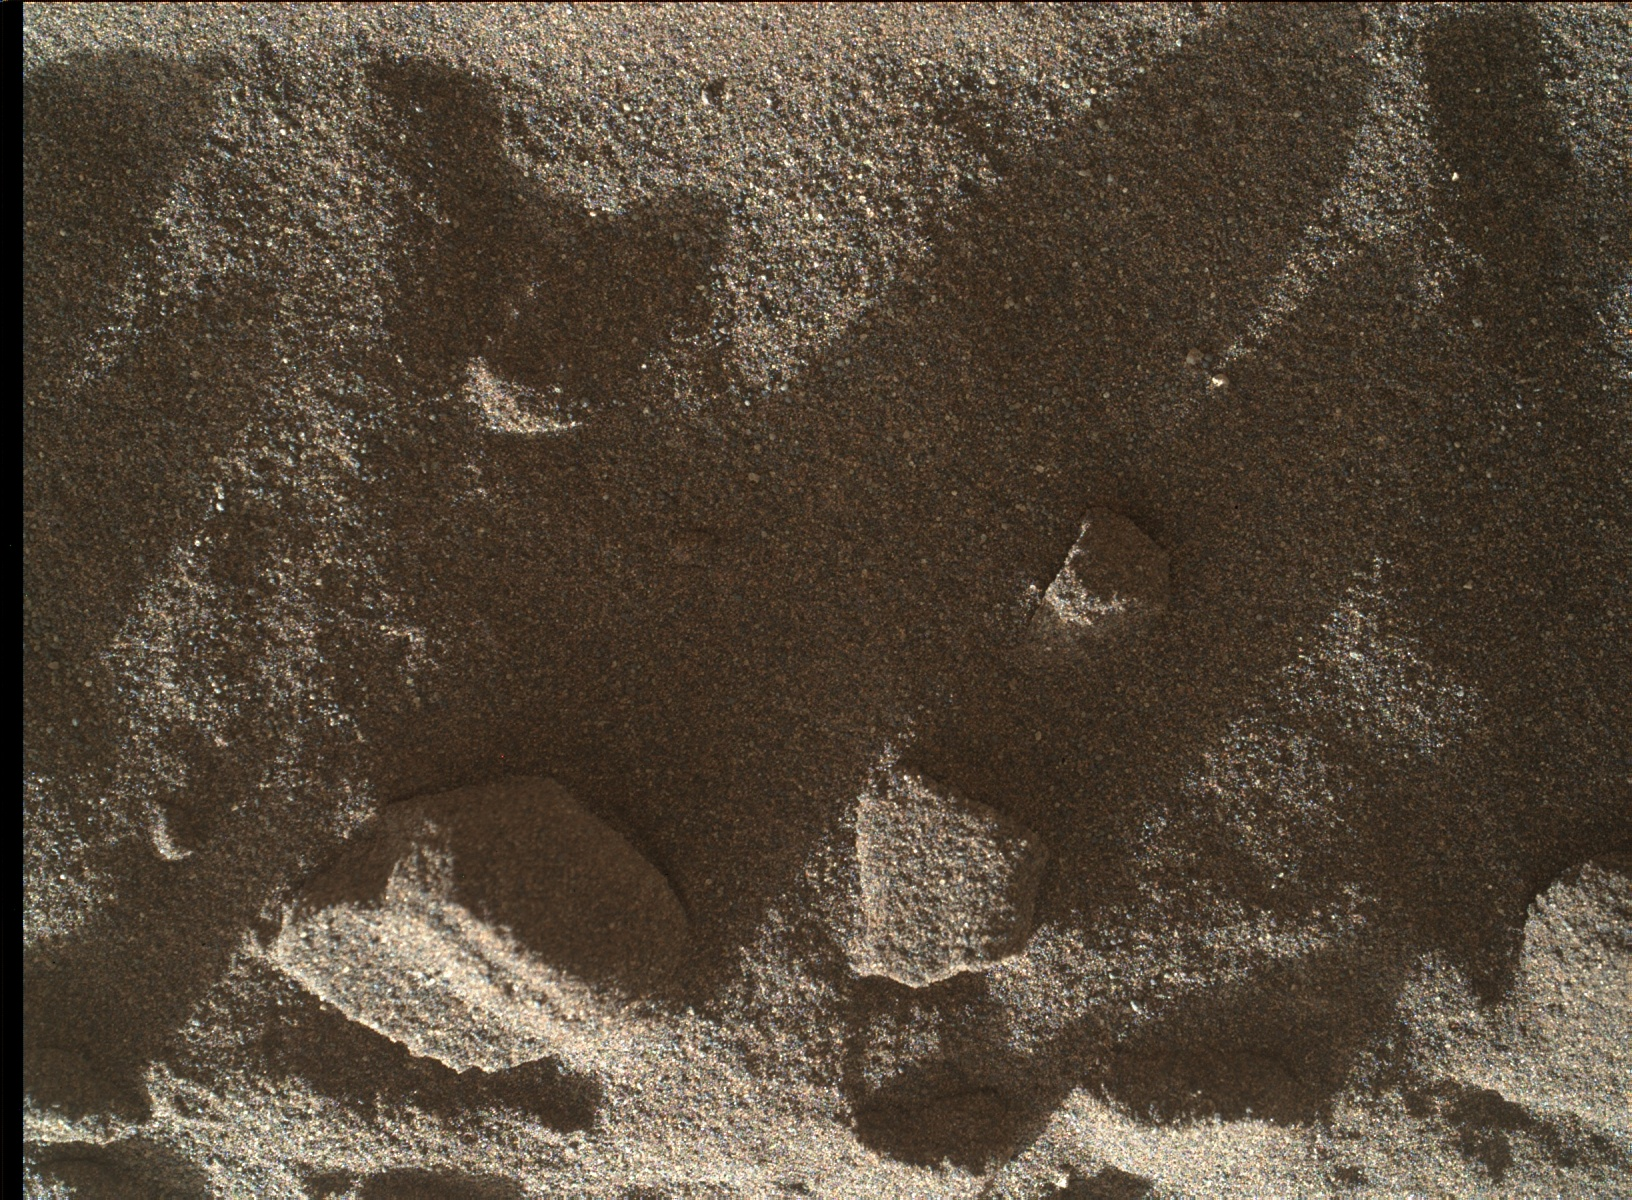 Nasa's Mars rover Curiosity acquired this image using its Mars Hand Lens Imager (MAHLI) on Sol 1182